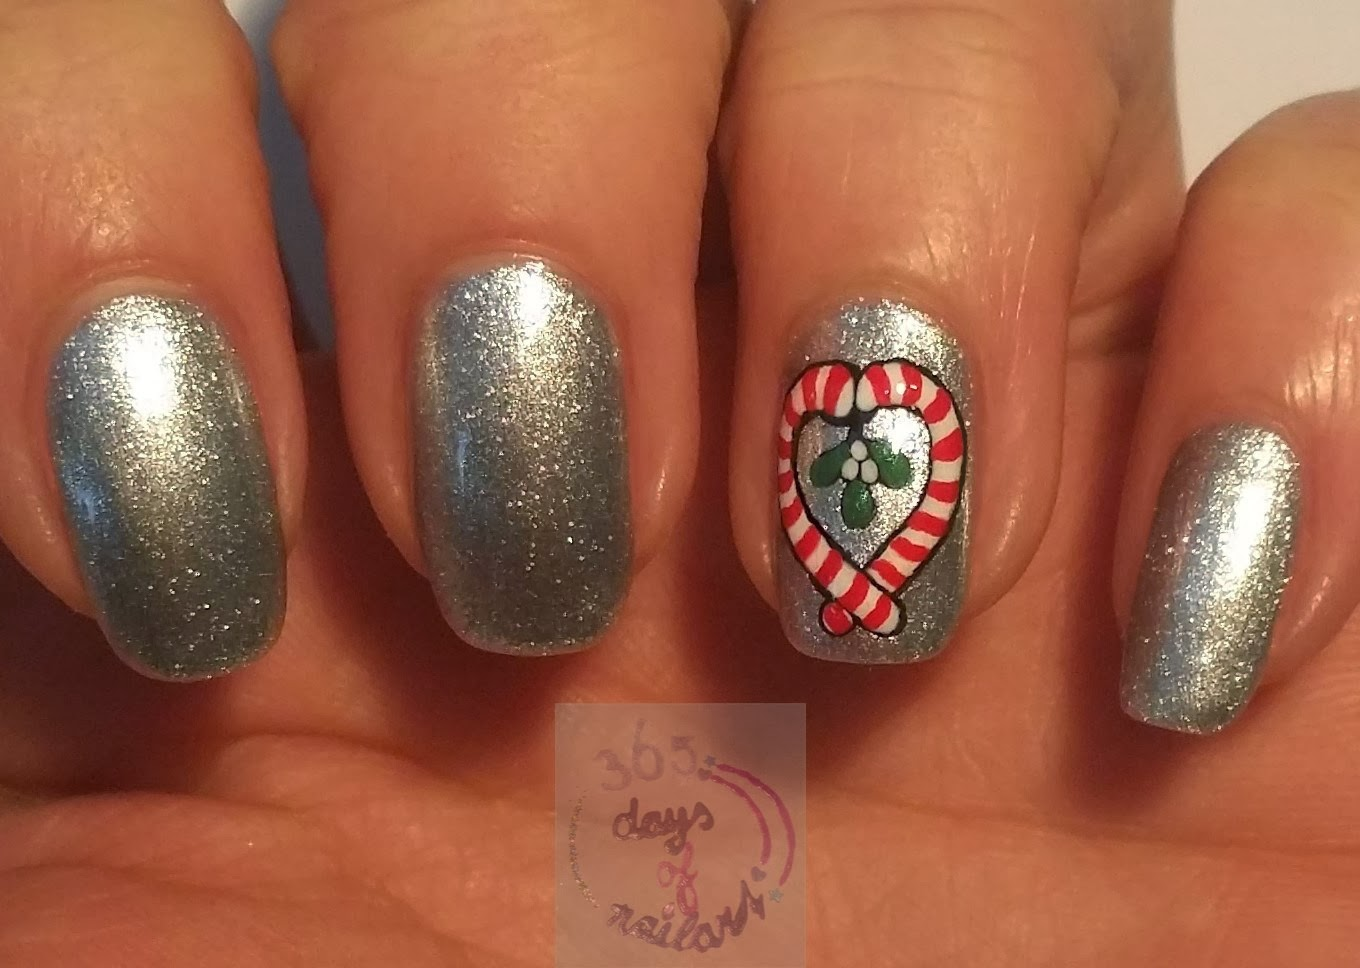 365 Days Of Nail Art Day 343 Candy Canes And Mistletoe